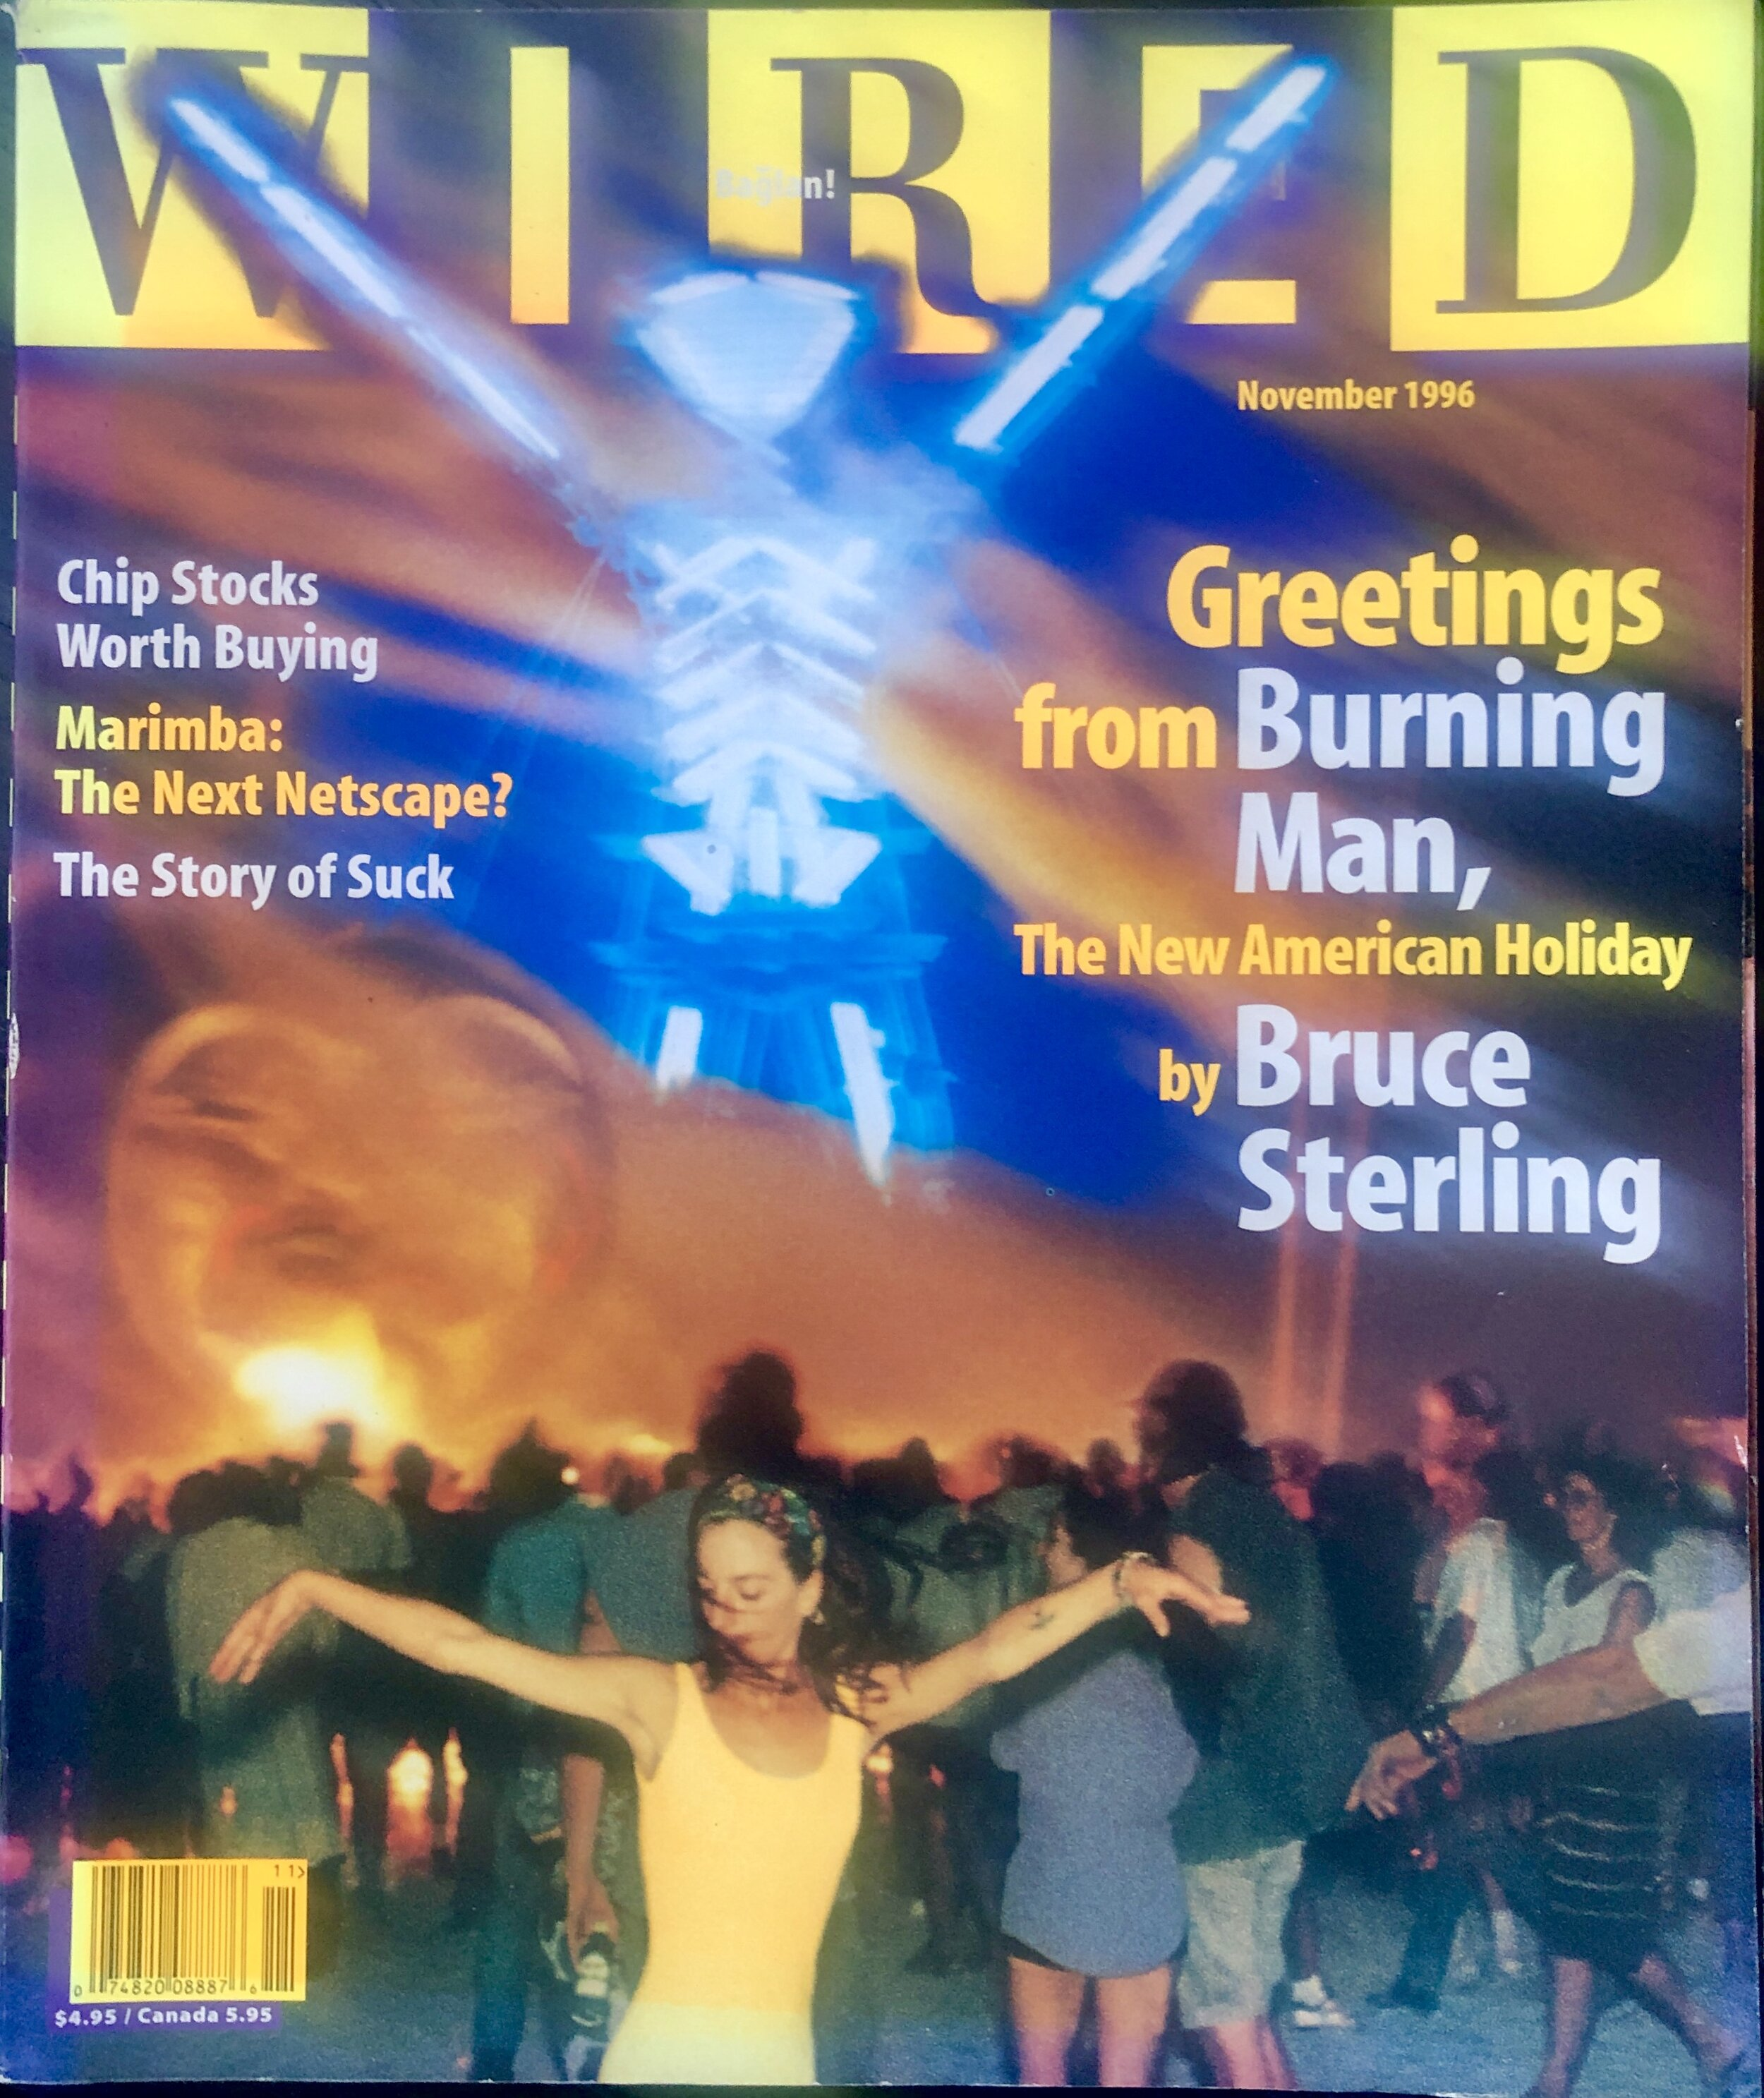 Wired Magazine, November 1996, Greetings from Burning Man, Wired Cover Story on Burning Man